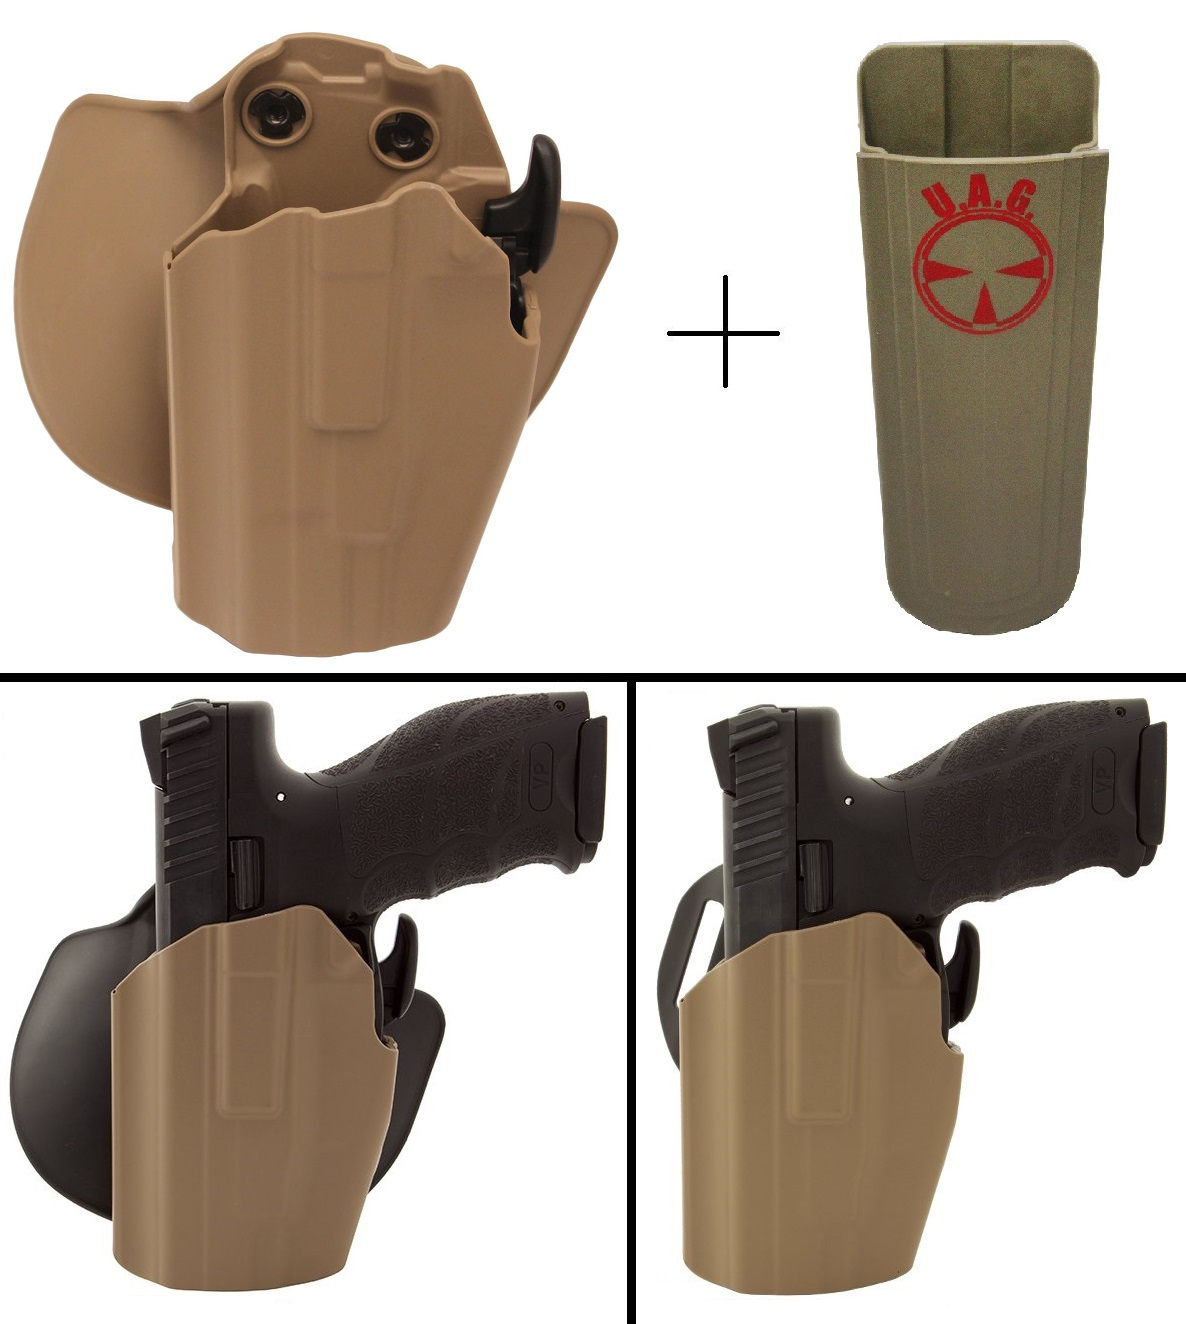 Safariland Holster HECKLER & KOCH H&K P2000SK 9MM & .40 Pro-Fit 578-183-552 7TS GLS Sub-Compact Frame Multi-Fit Paddle & Belt Left Hand, Flat Dark Earth + Ultimate Arms Gear 9mm/.40/.45 Mag Pouch